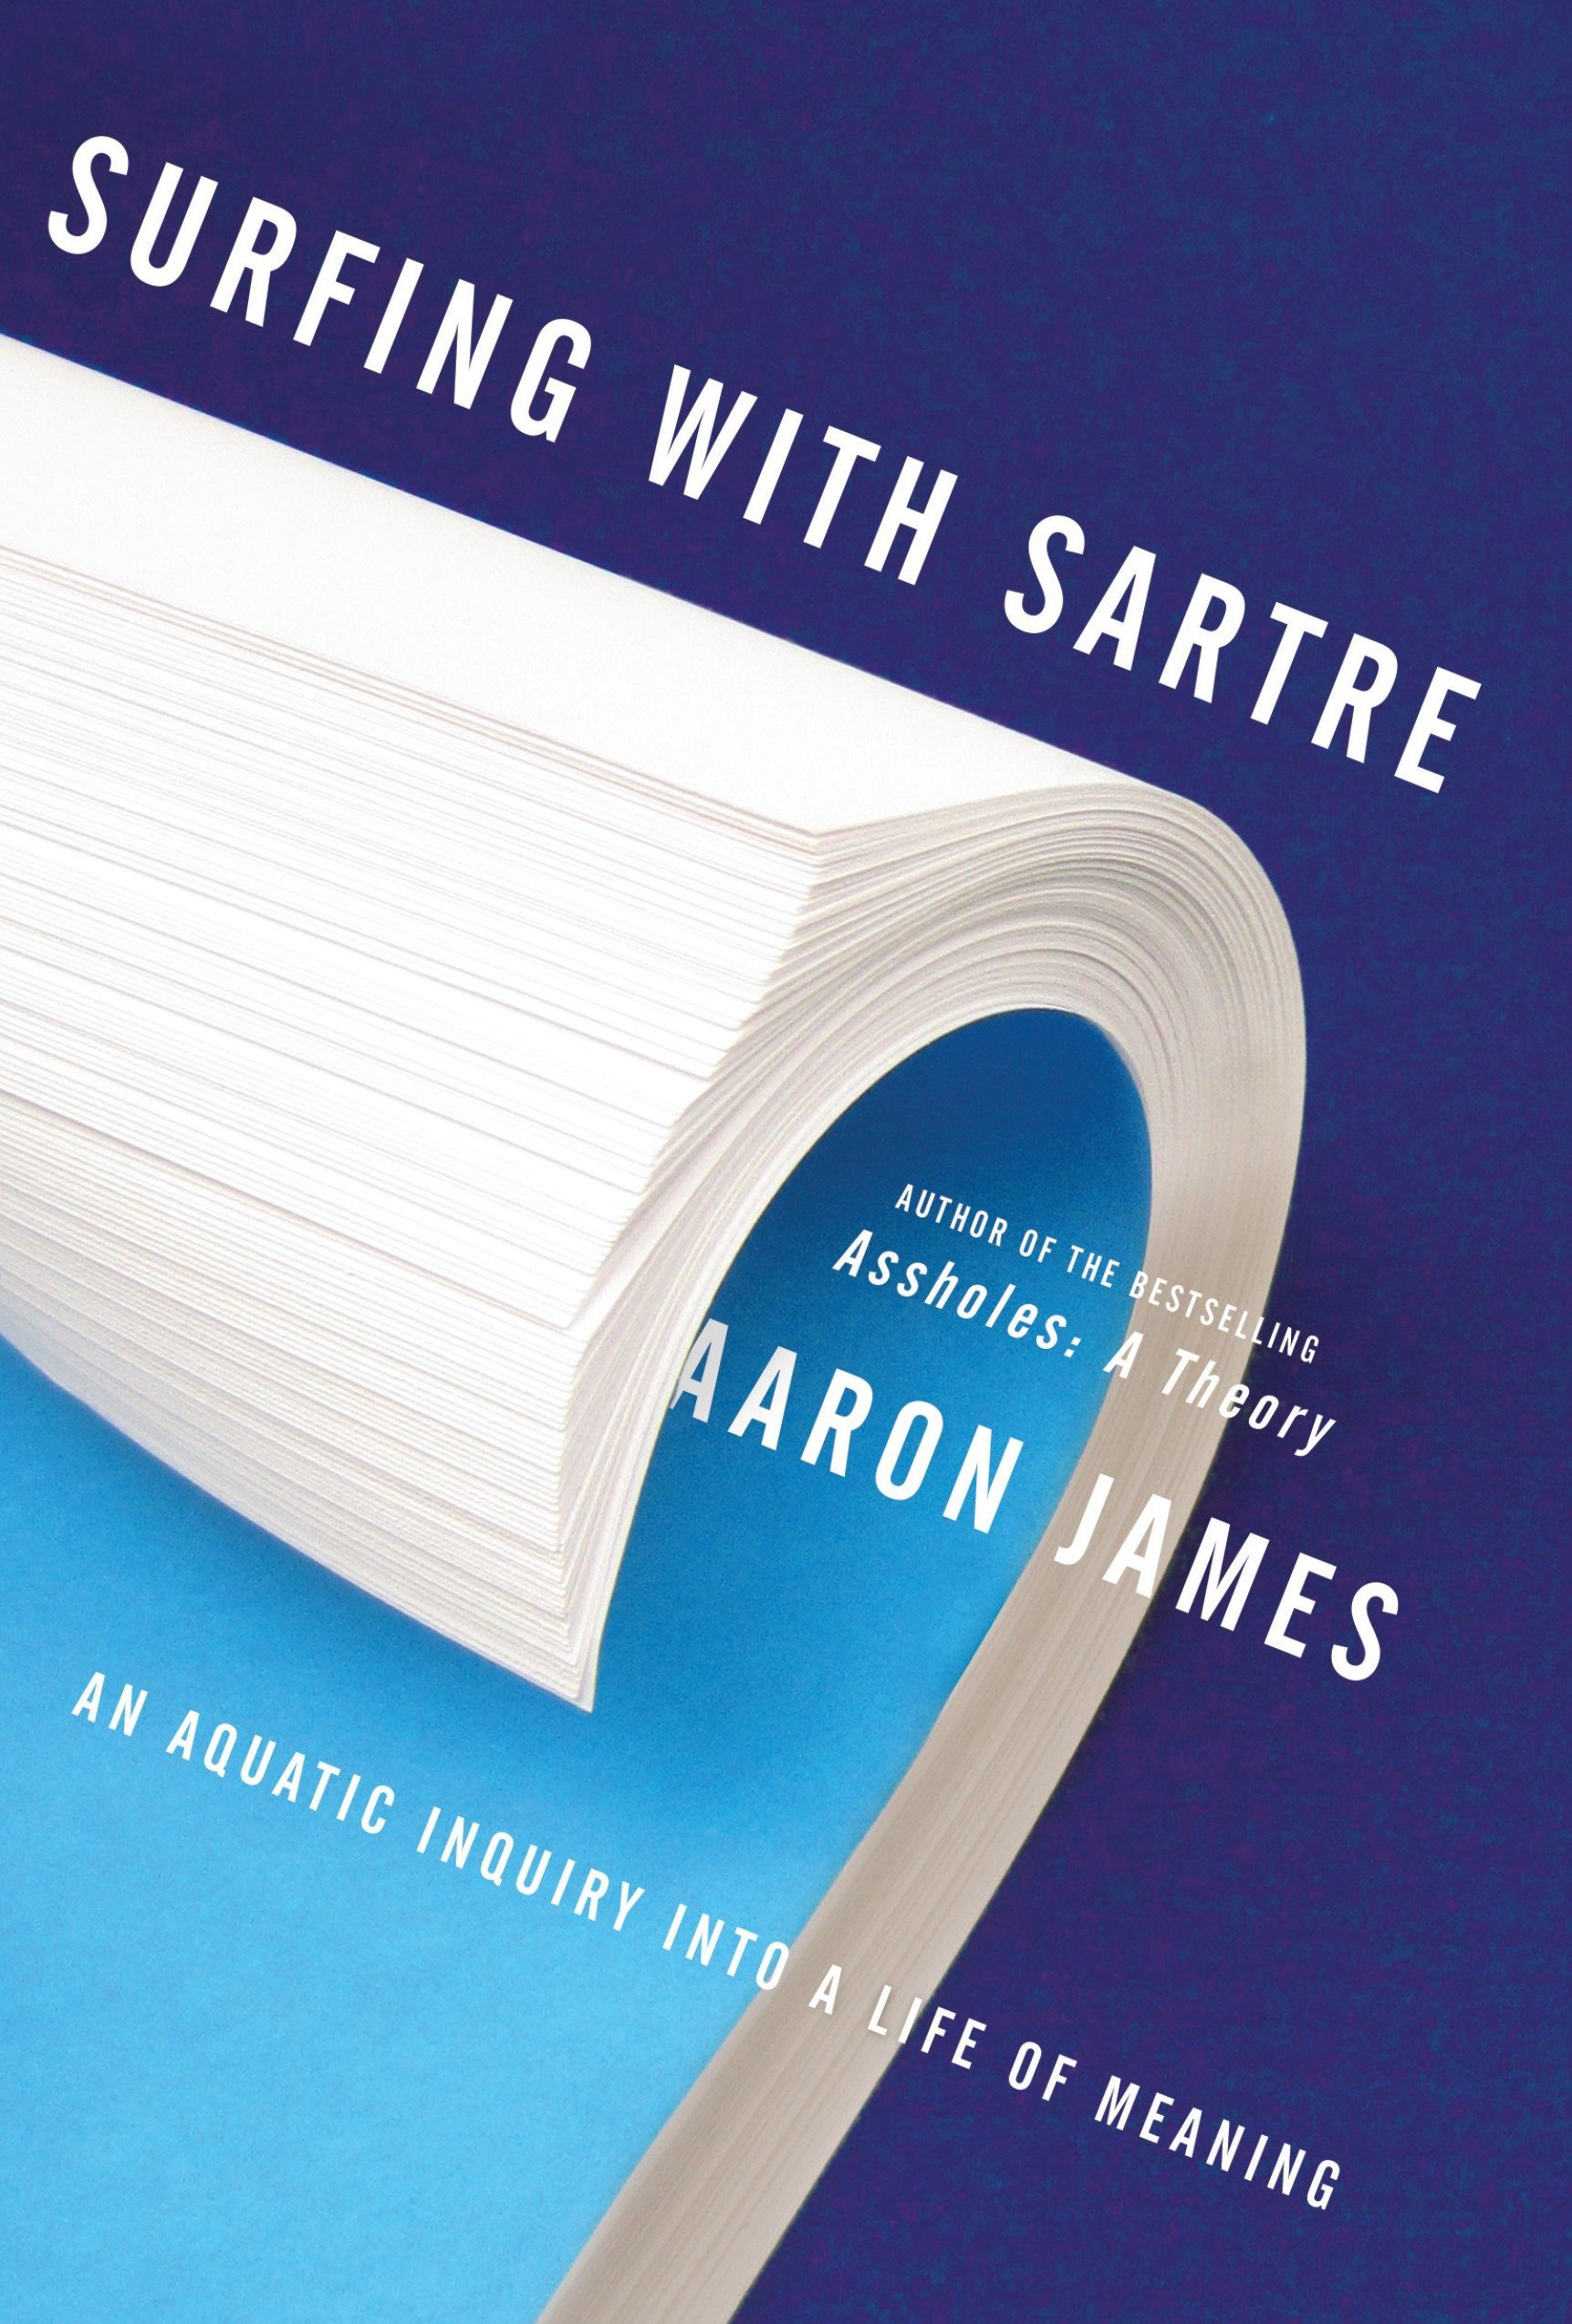 Surfing with Sartre: An Aquatic Inquiry Into a Life of Meaning por Aaron James